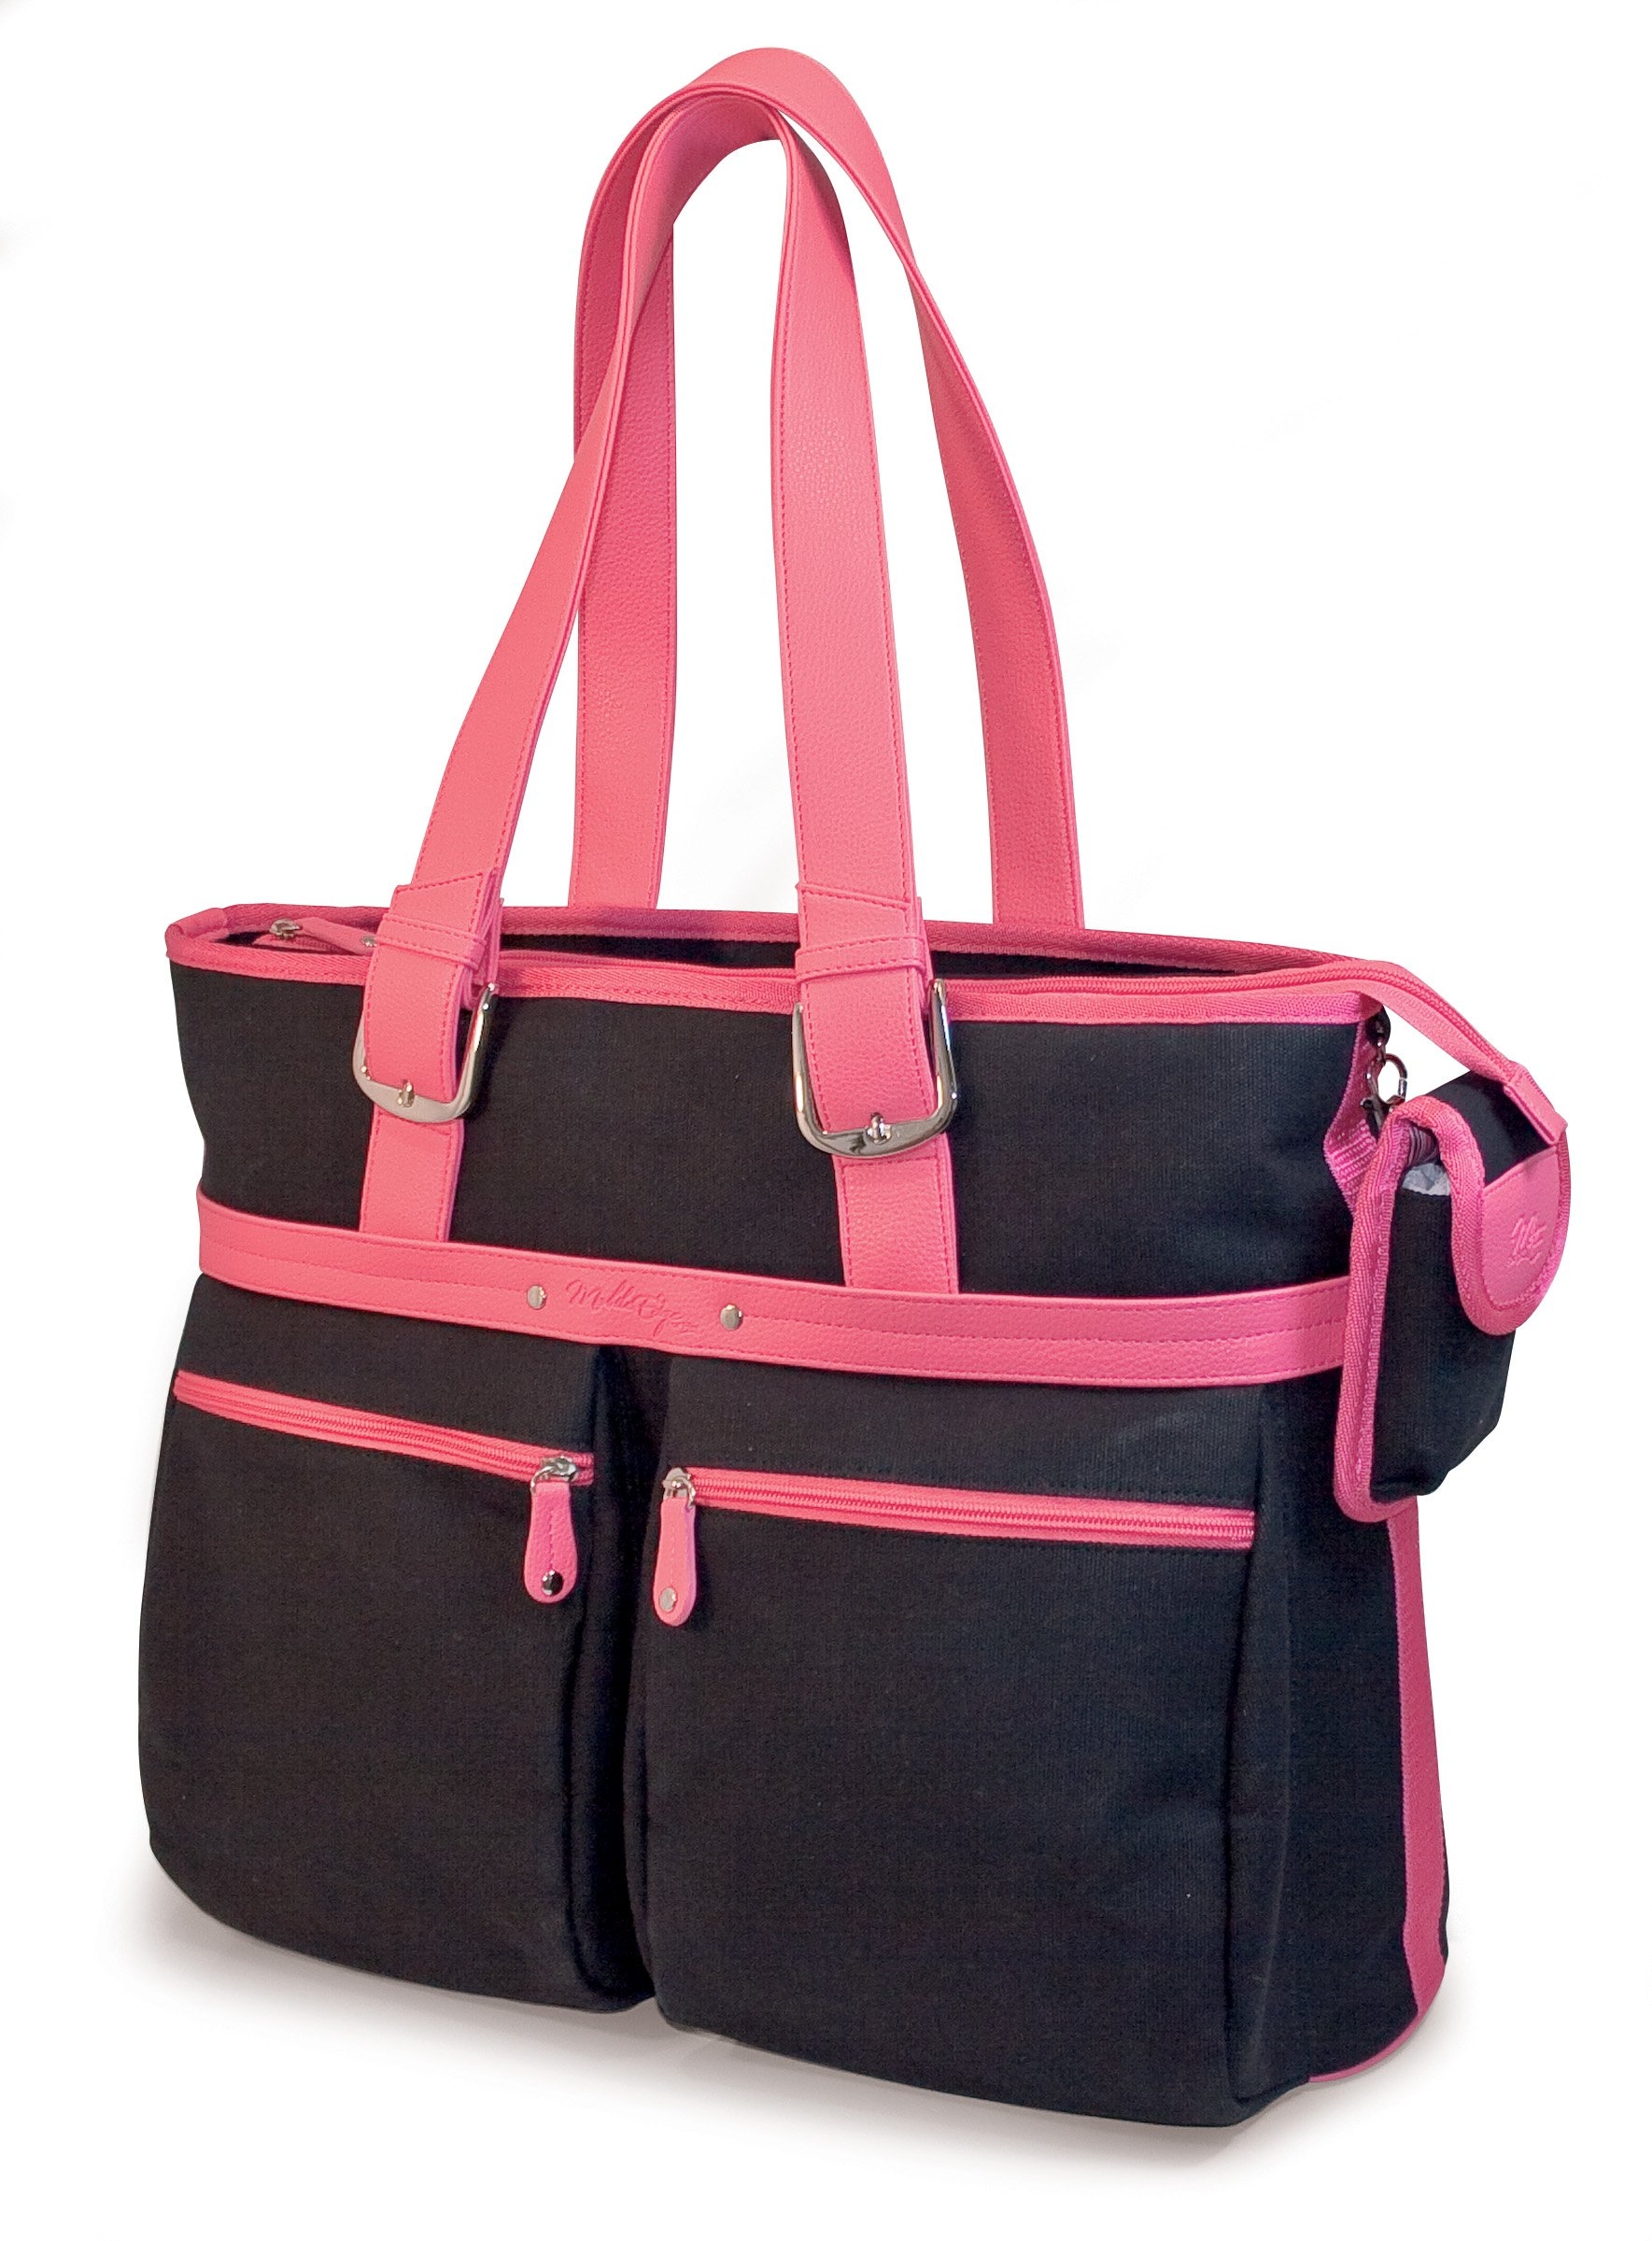 Mobile Edge Eco-Friendly Tote, Black w/Pink Trim Fits 16 Inch PC and 17 Inch MacBook, for Women, Business, Students MECTEK1